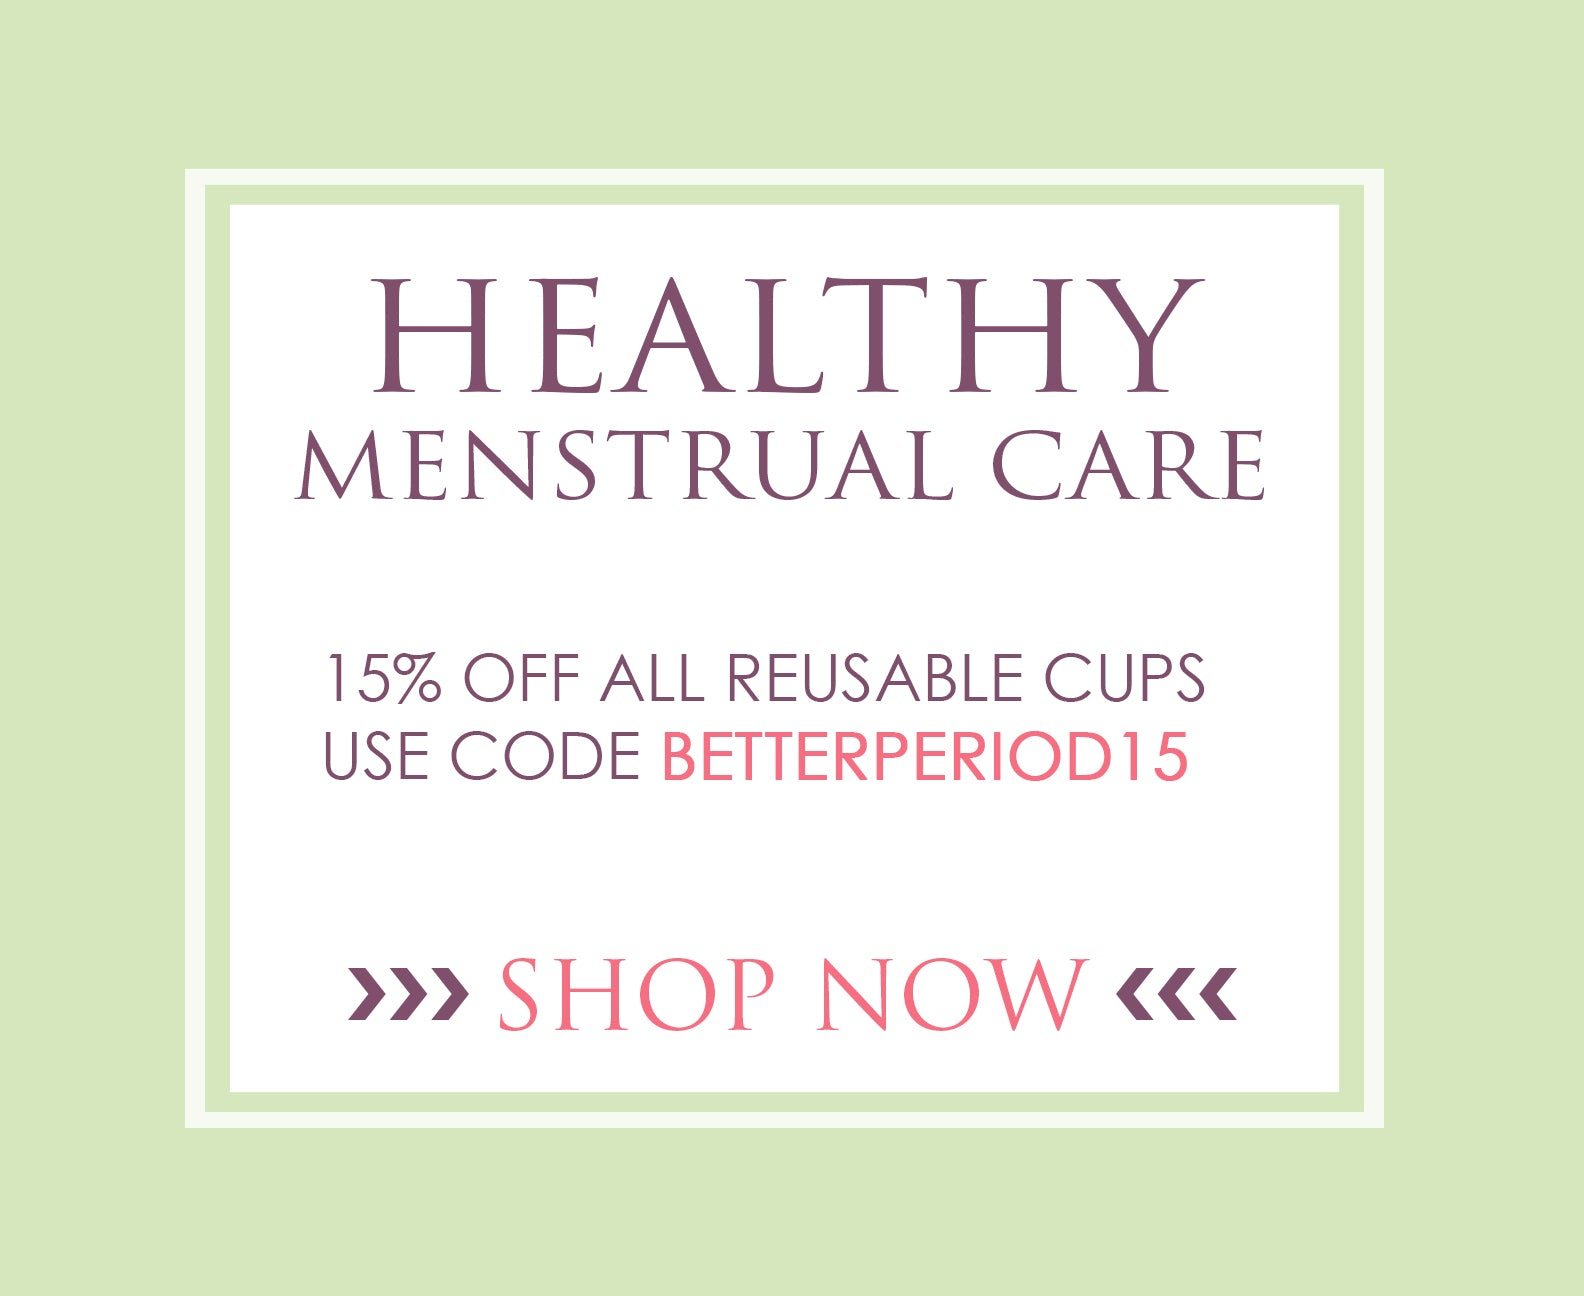 Menstrual Cups 15% OFF Promotion